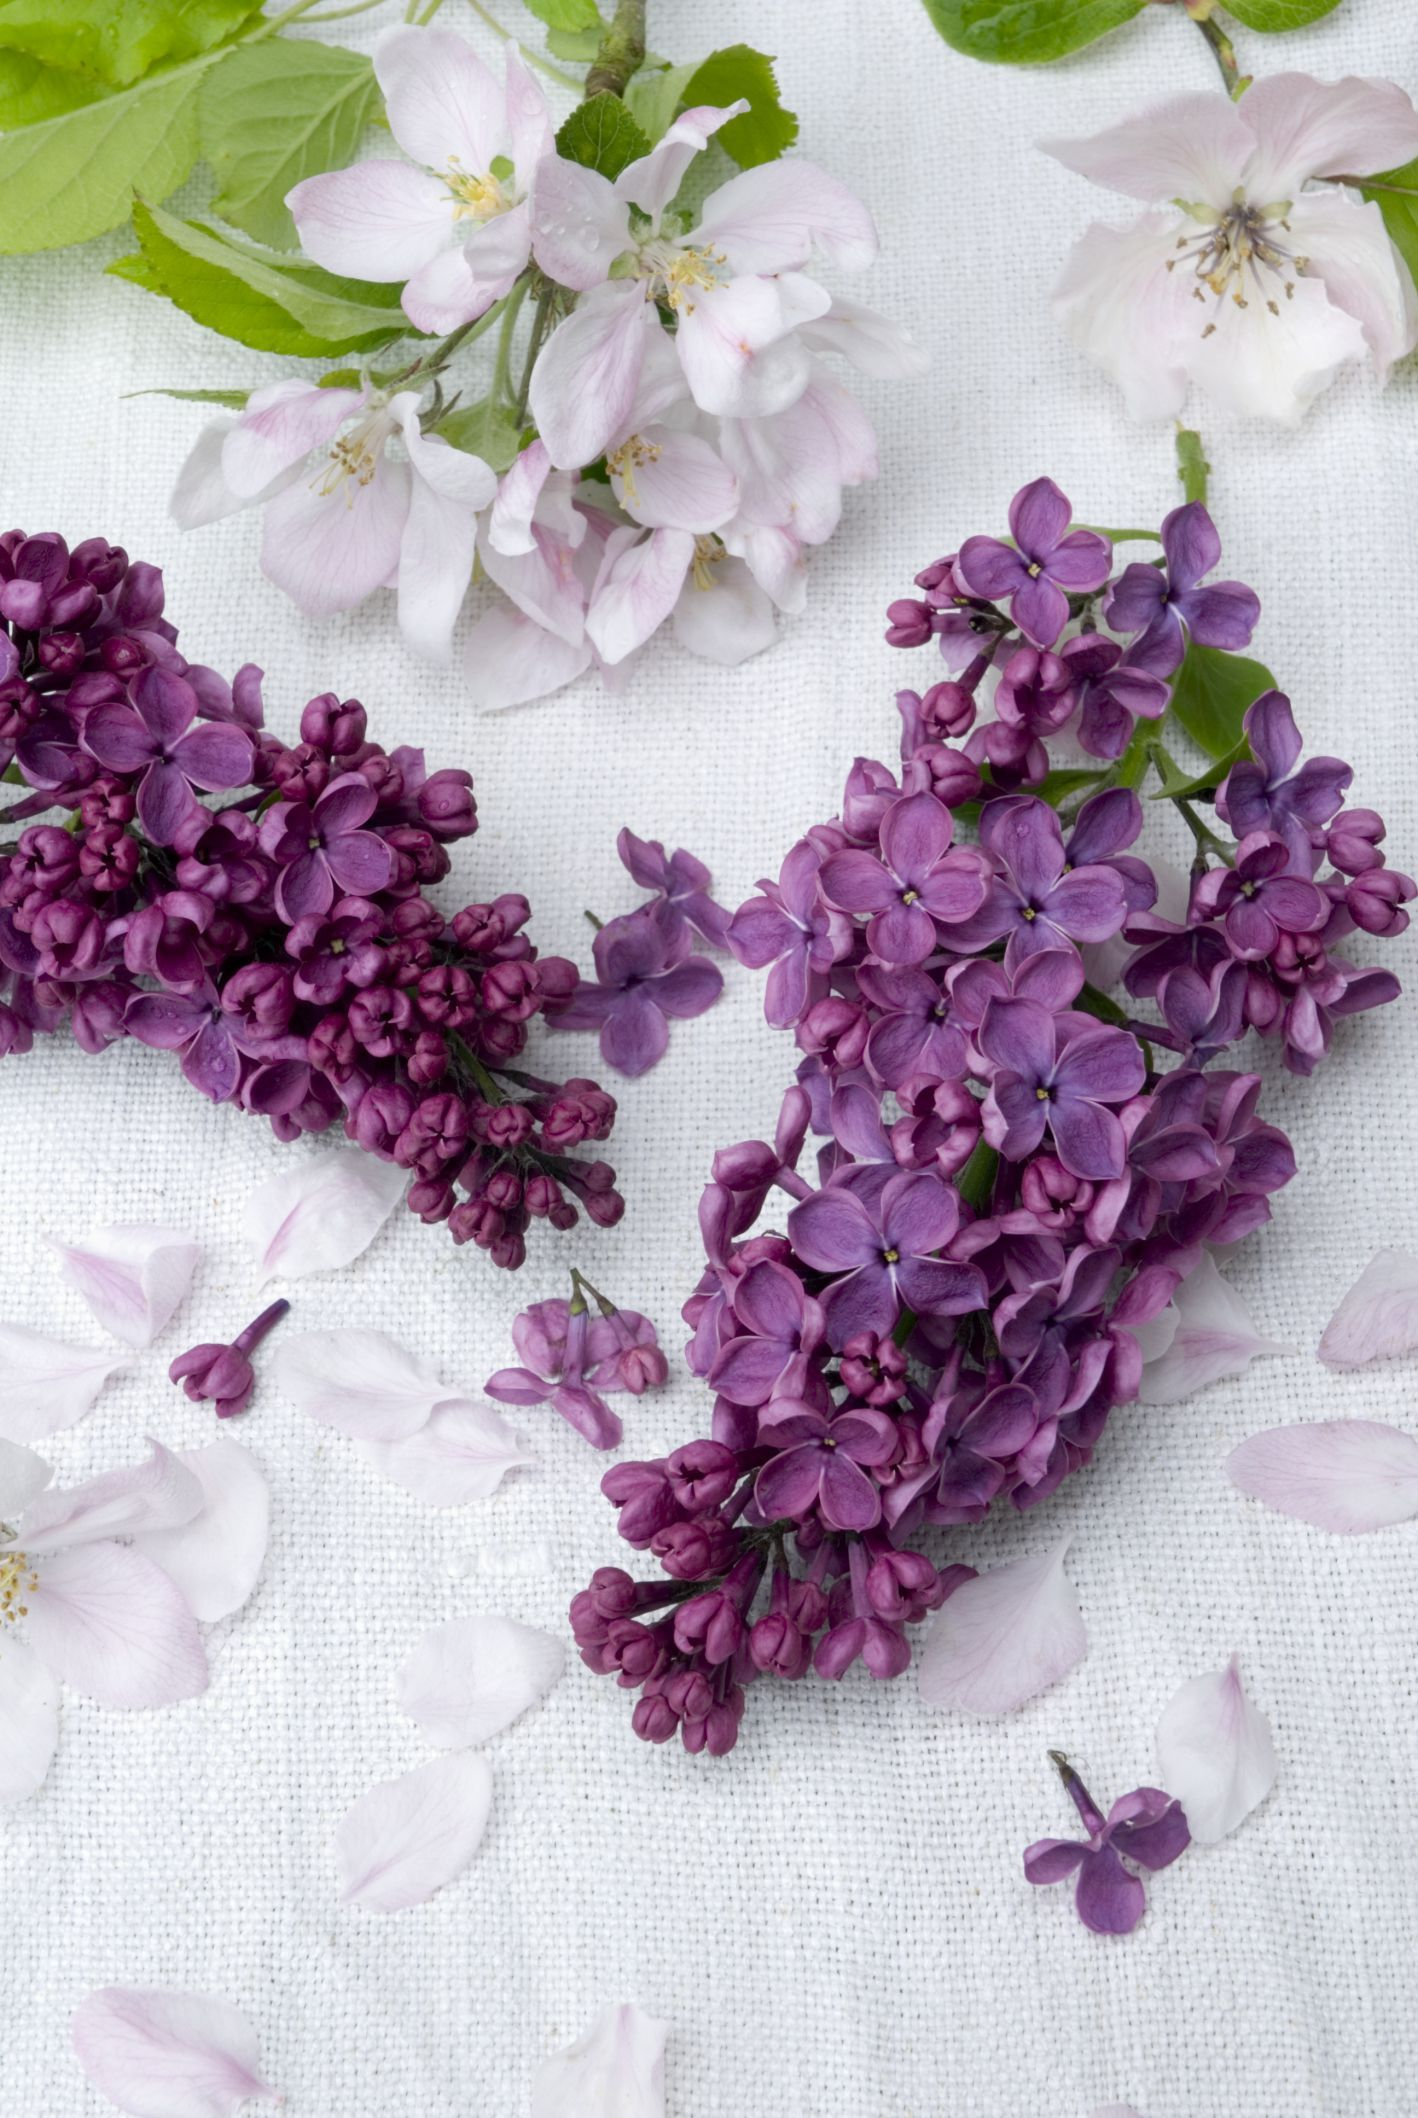 12 Facts Every Lilac Lover Should Know Lilac Tulips Garden Lilac Bushes